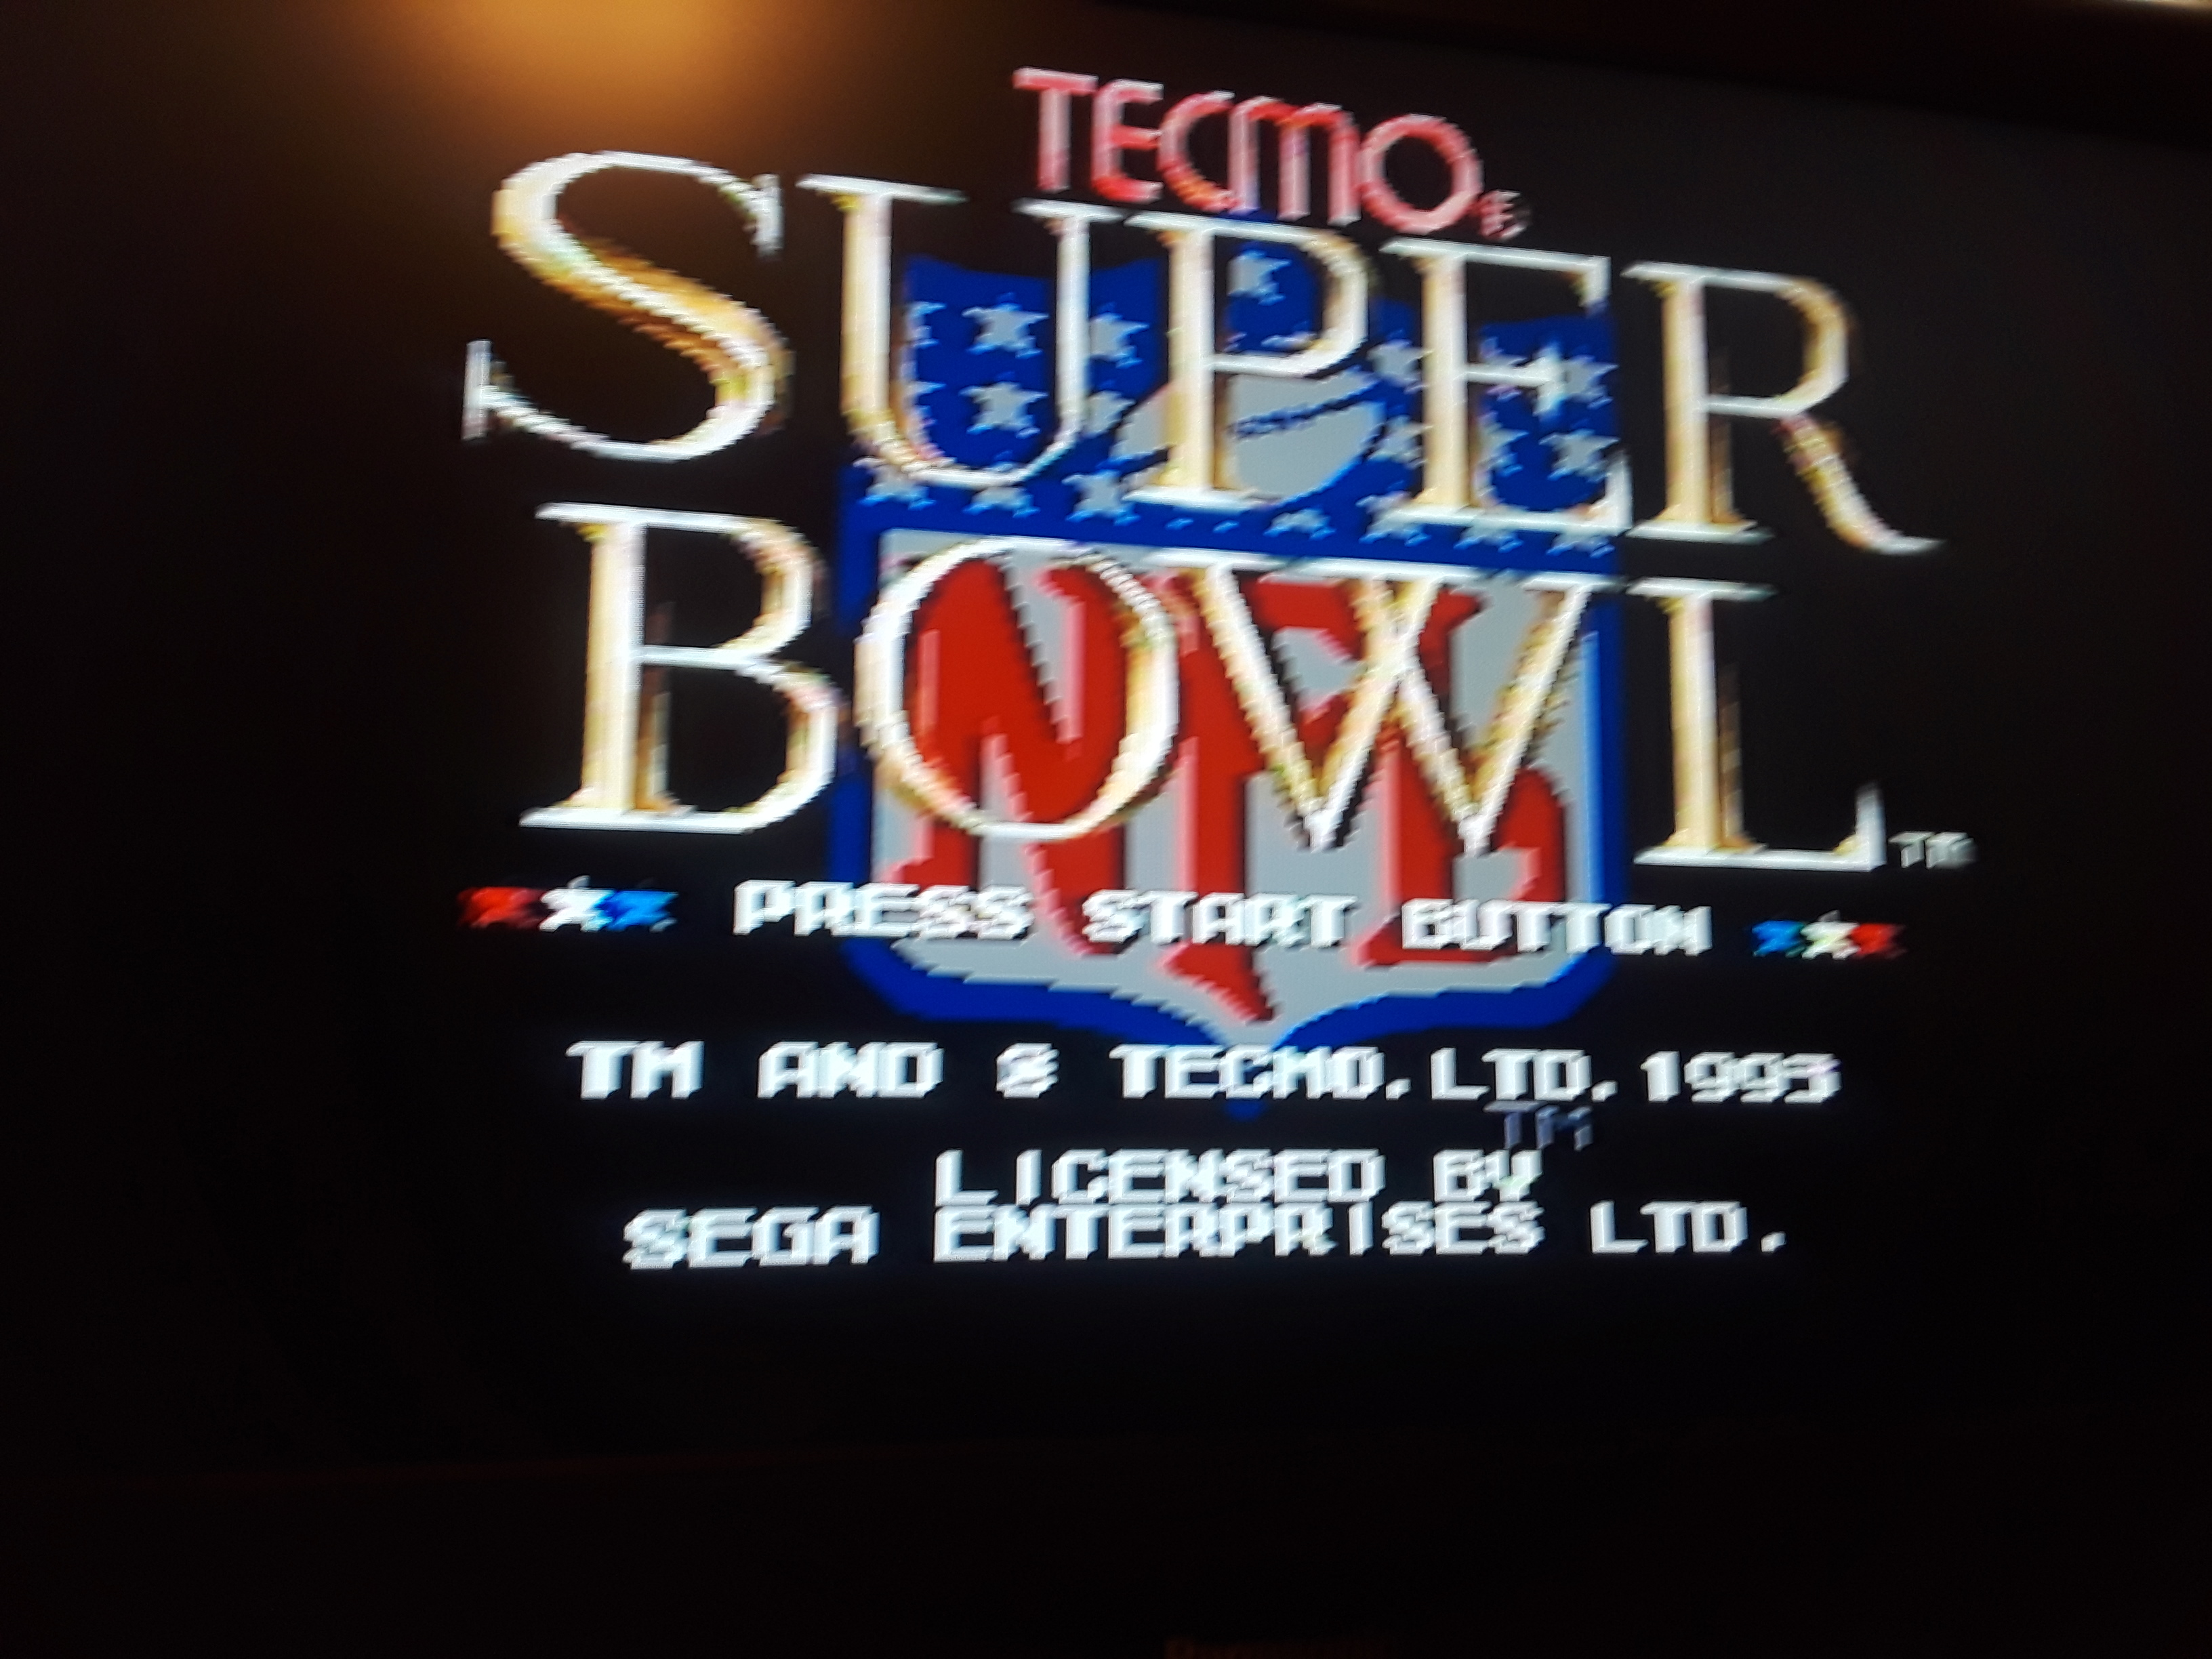 JML101582: Tecmo Super Bowl [Least 1st Downs Allowed] [Preseason Game] (Sega Genesis / MegaDrive Emulated) 2 points on 2018-08-31 19:42:52